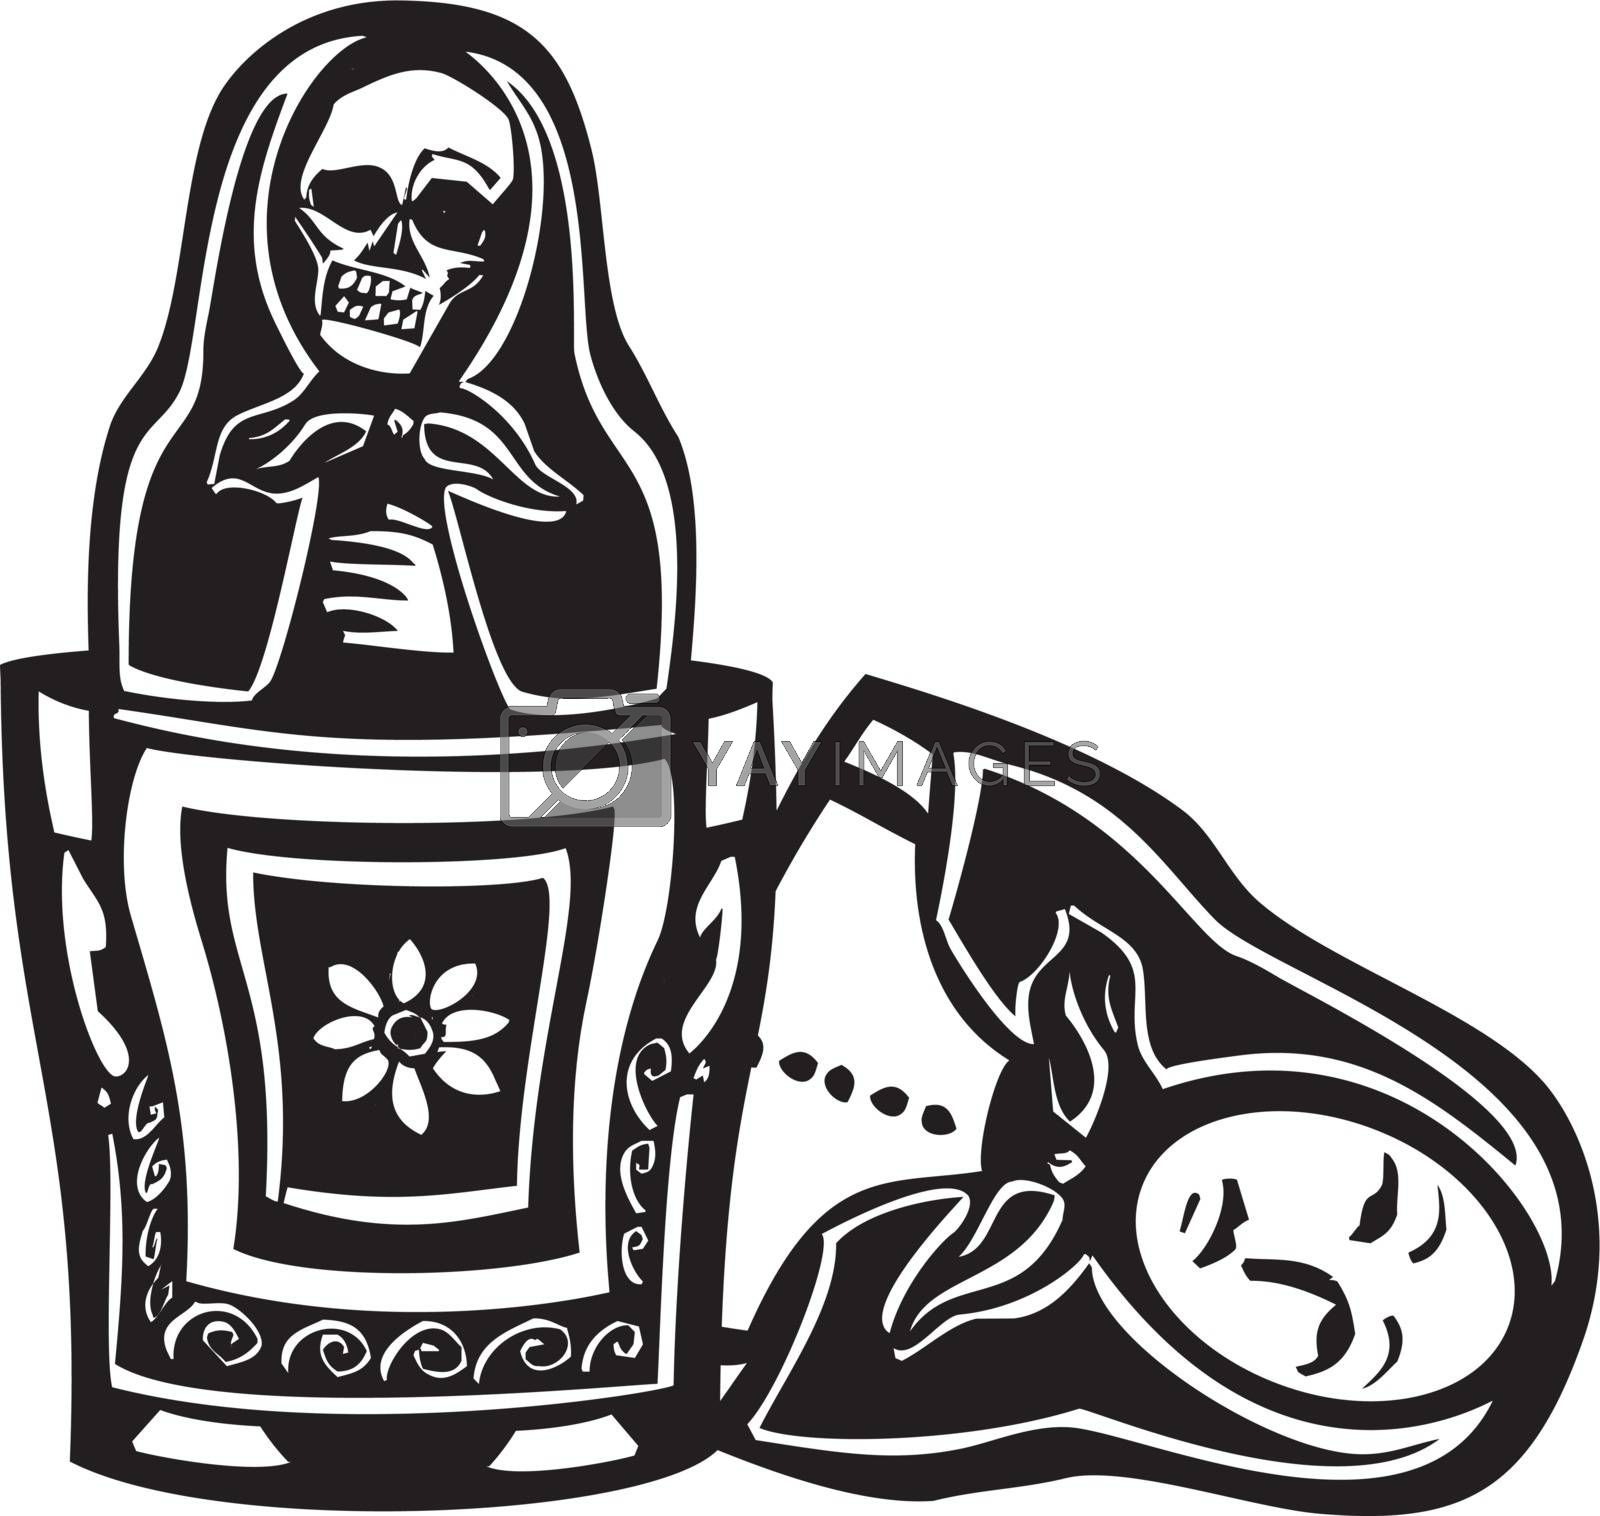 woodcut style image of a Russian nested doll with a skeleton doll inside.